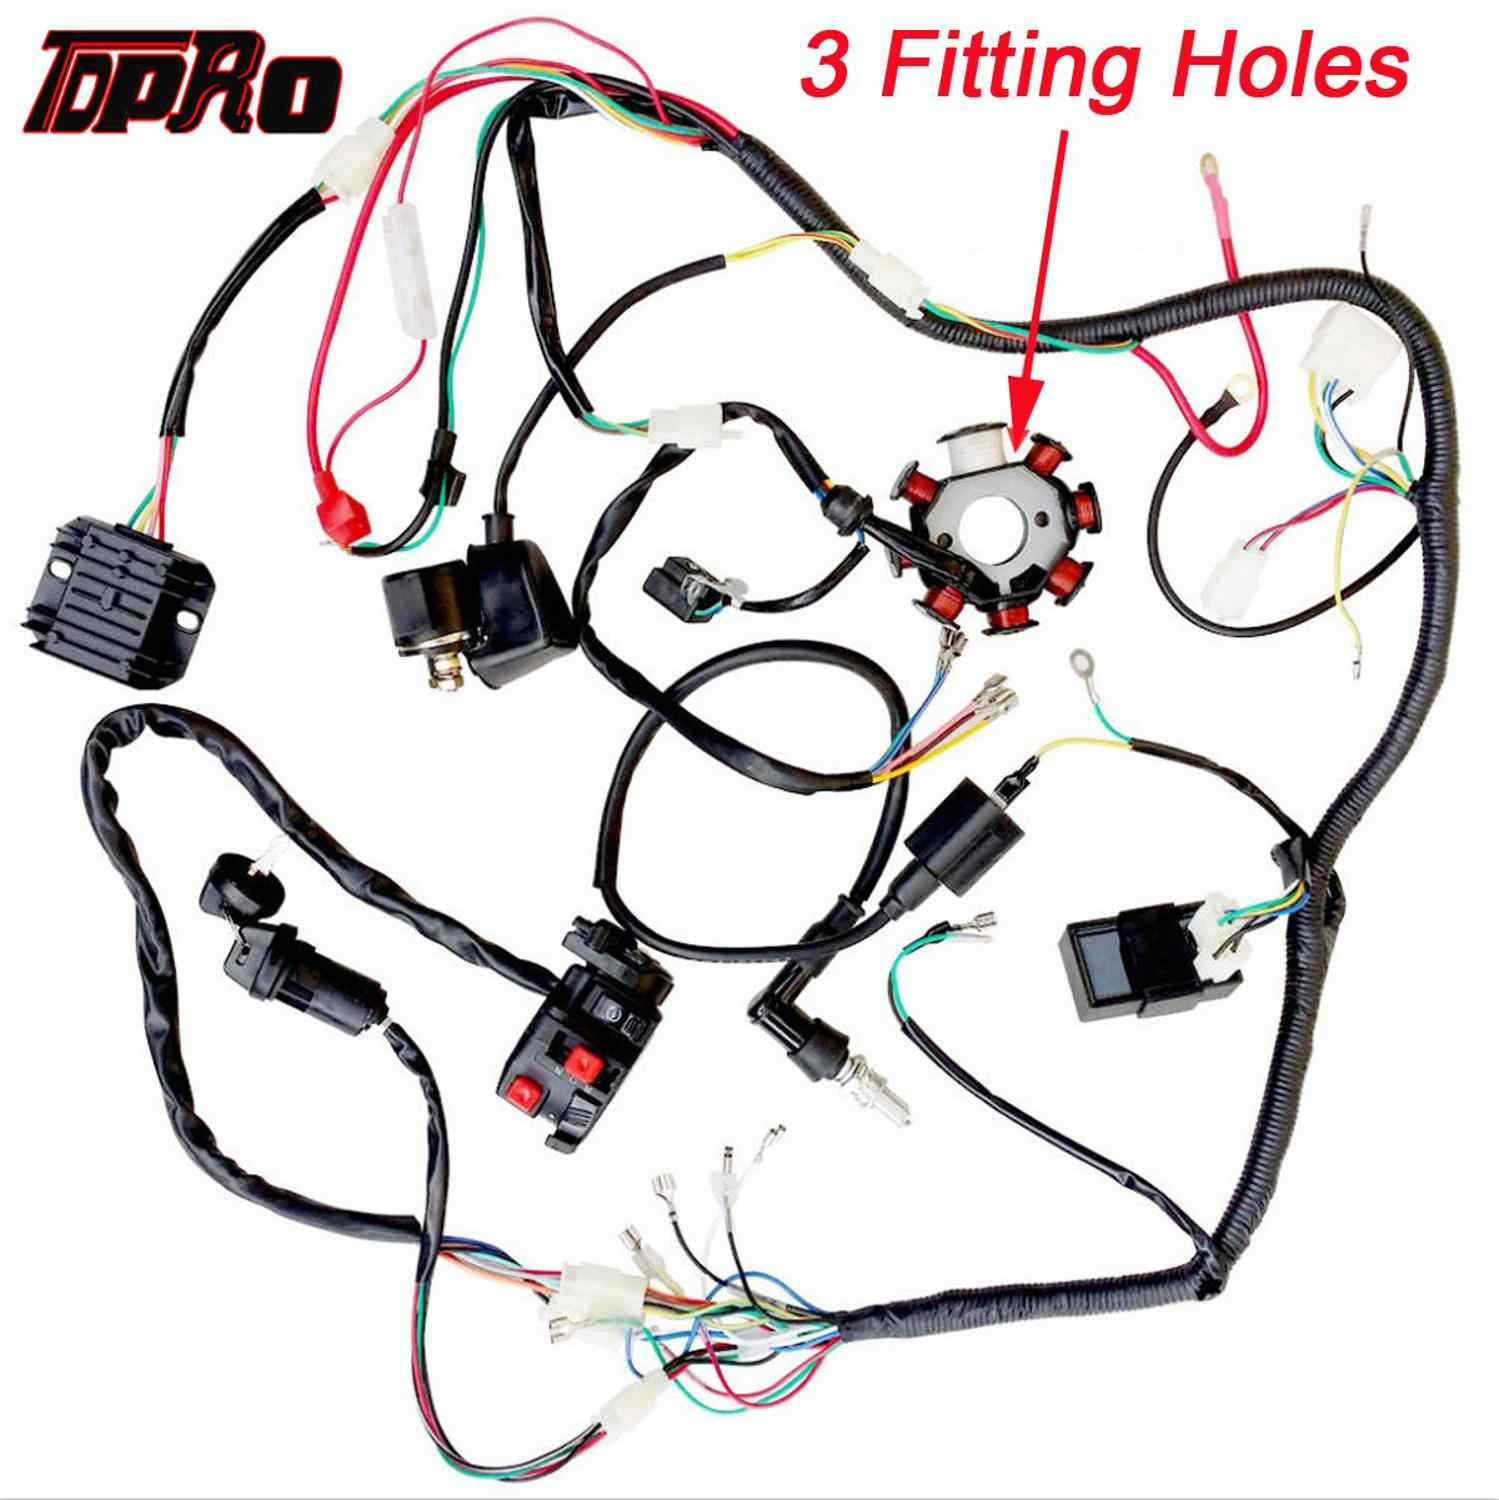 Tdpro Motorcycle Full Complete Electrics Wiring Harness Loom Ignition Coil Cdi Switch For Scooter Moped 125cc 250cc Pitbike Go K Aliexpress